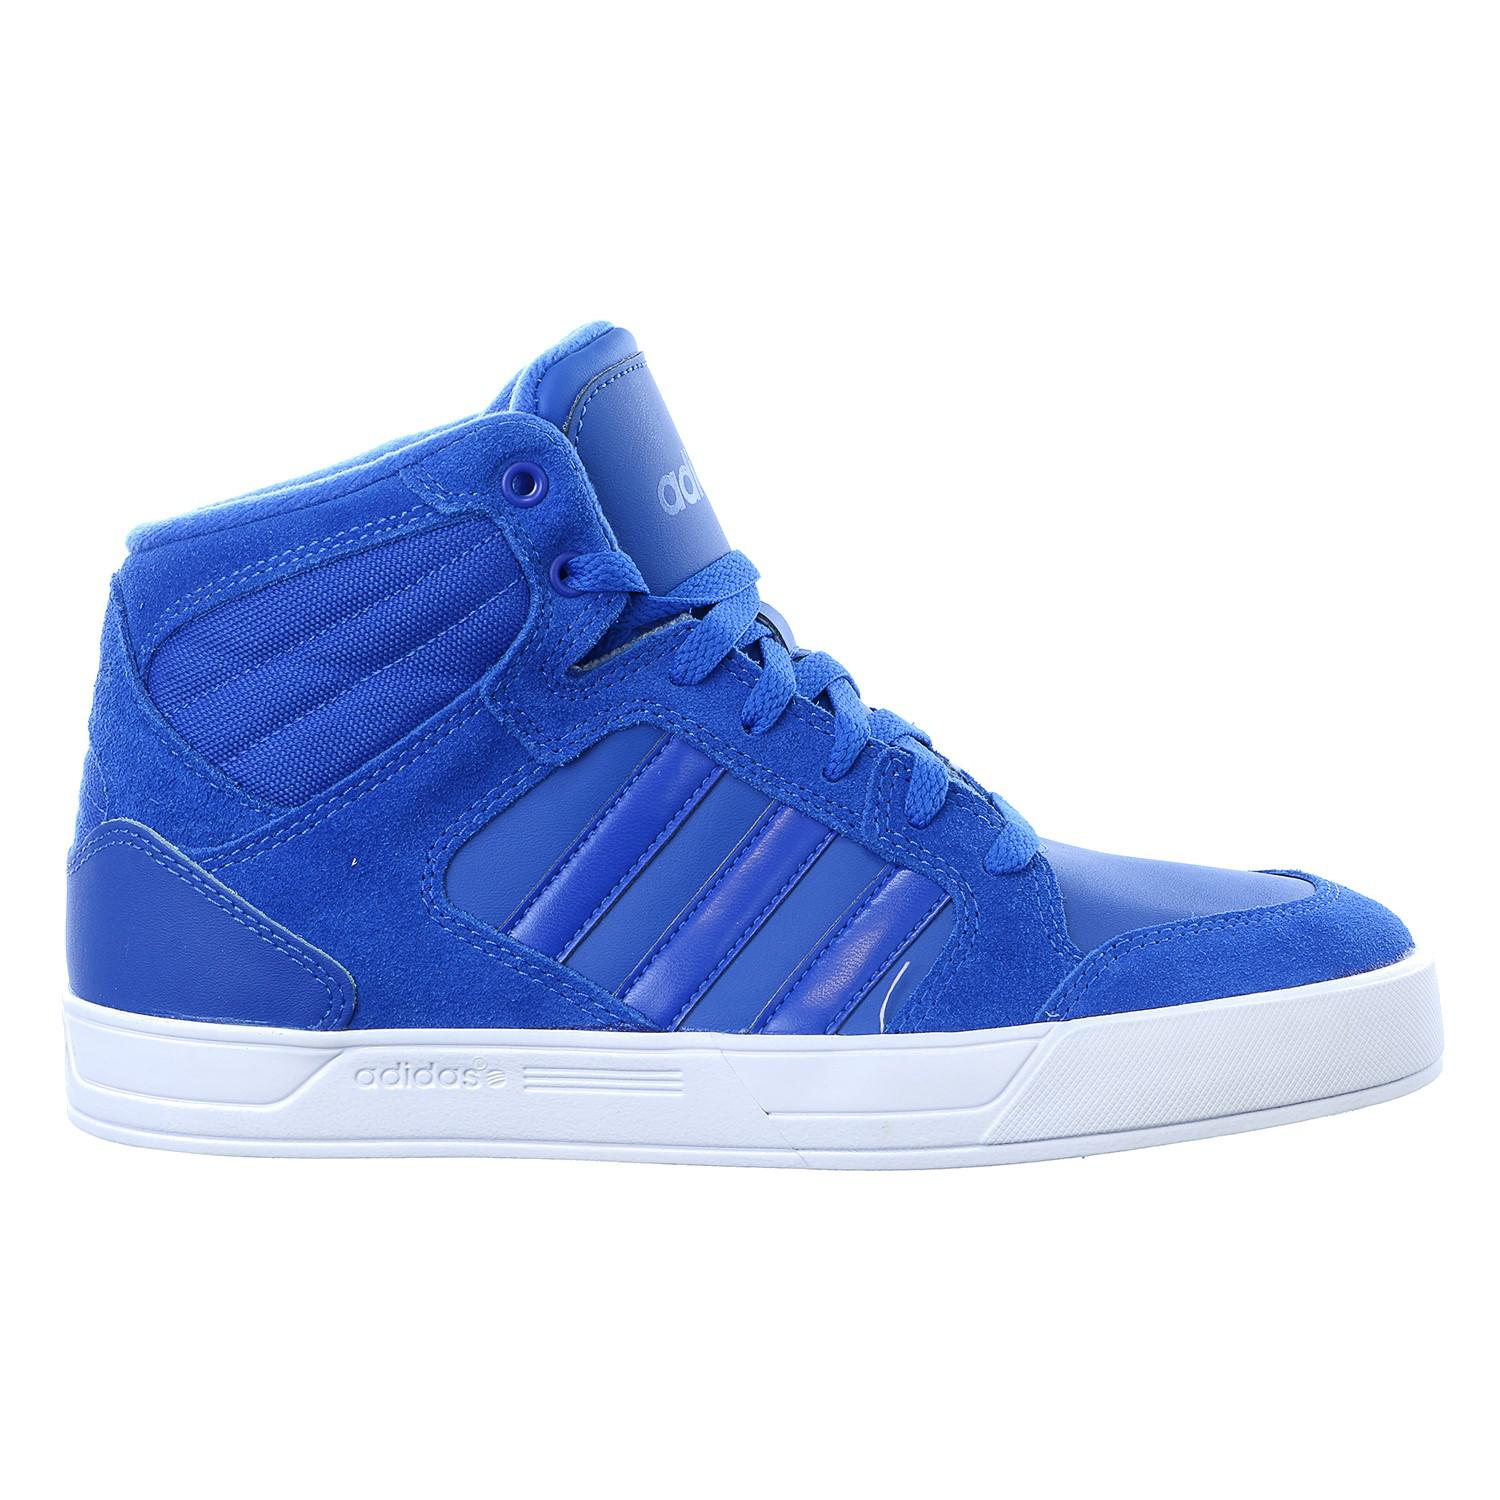 coupon for adidas neo raleigh high top sneaker king b4af7 11cd9